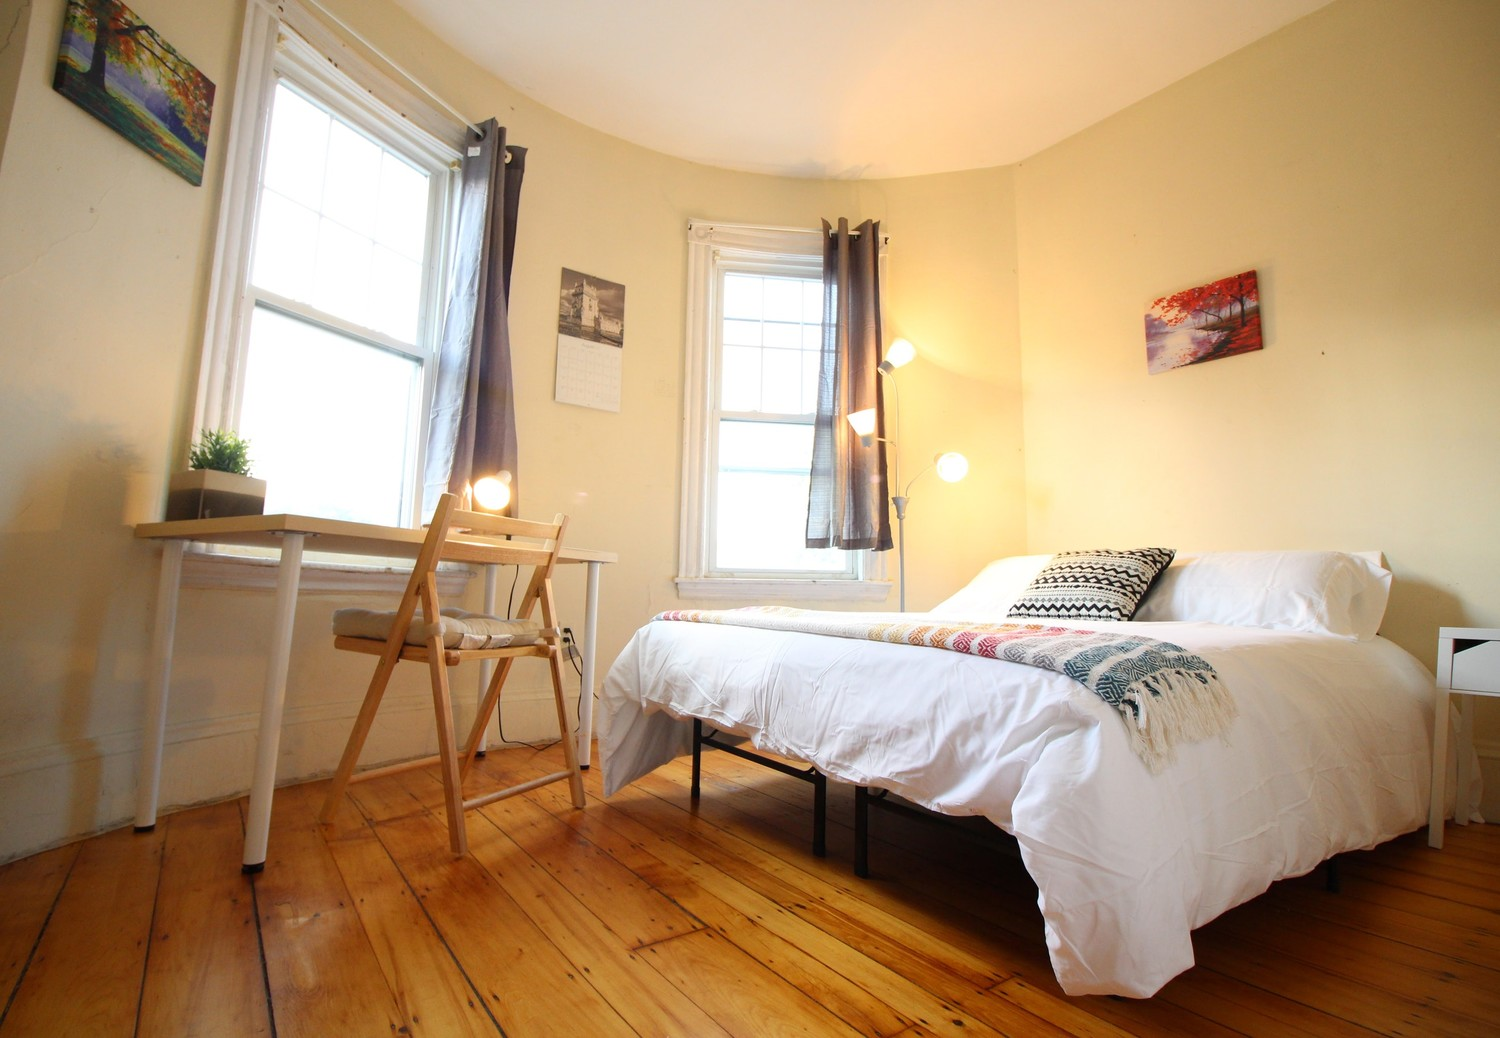 Private & Furnished Room in 5 Bed Apt. with Utilities & WiFi Included - Near Northeastern, Wentworth IT, and Harvard Medical School